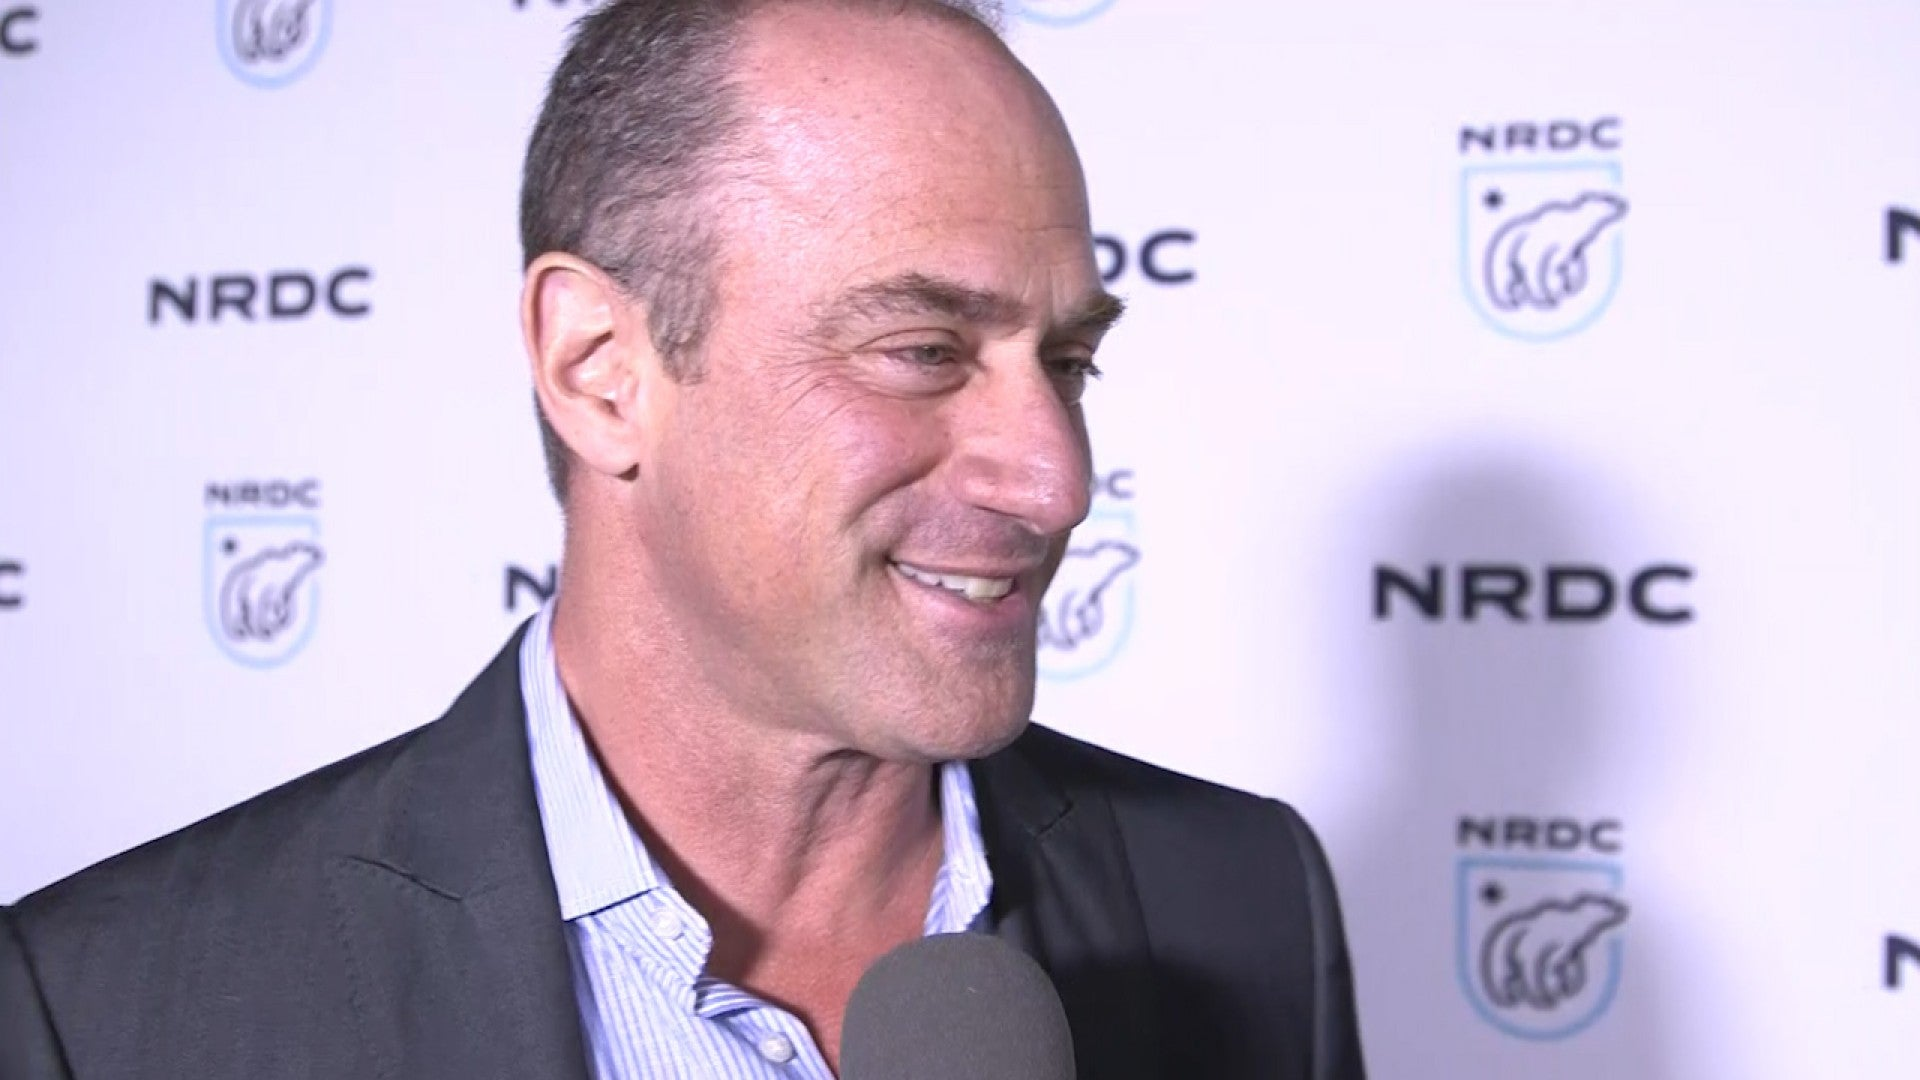 Exclusive Chris Meloni Says Hes Open To Coming Back To Law